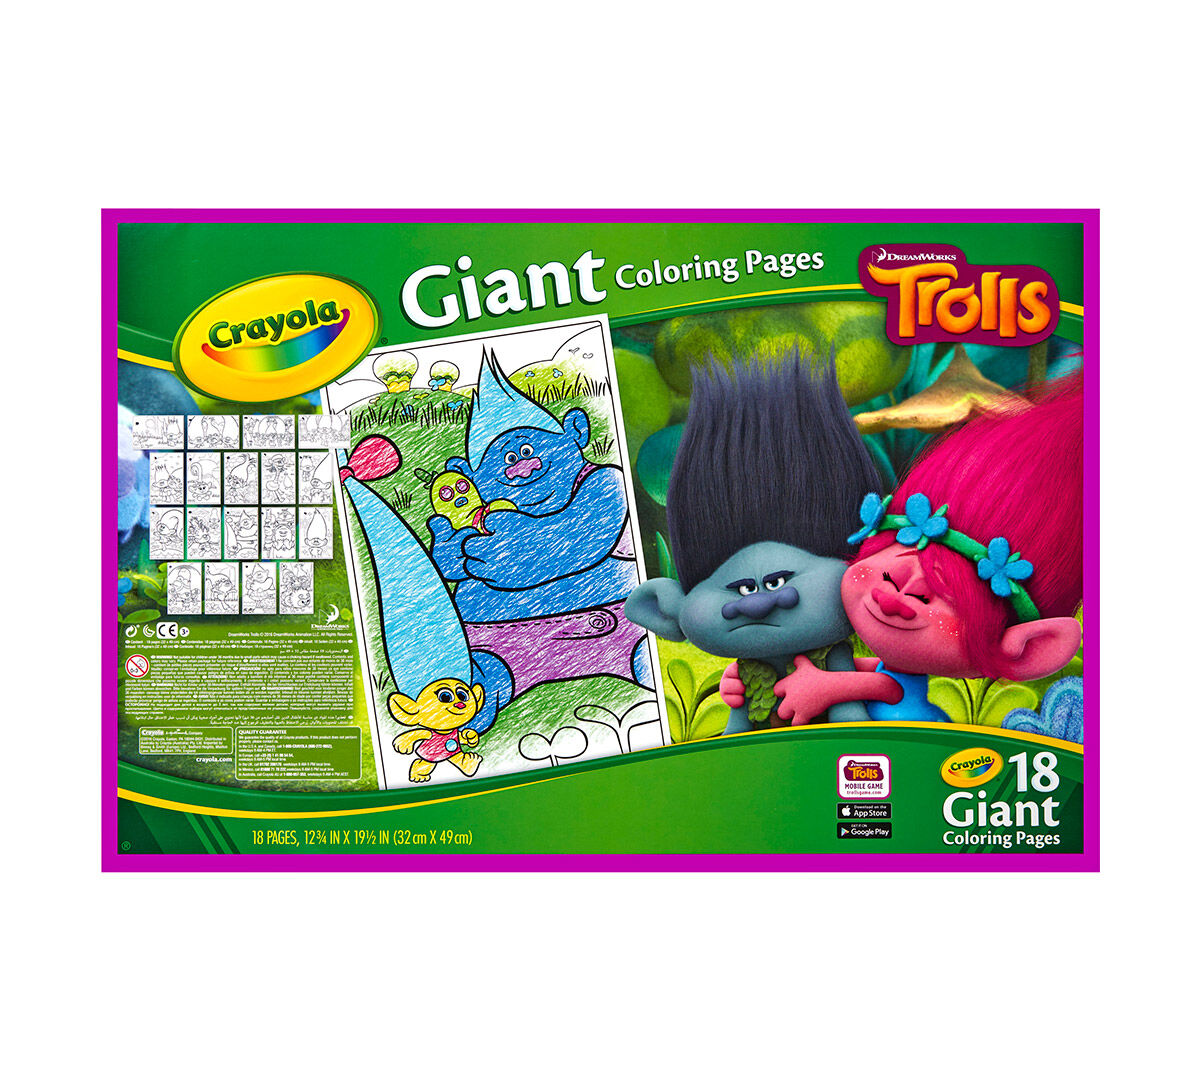 Giant Coloring Pages - Trolls - Crayola